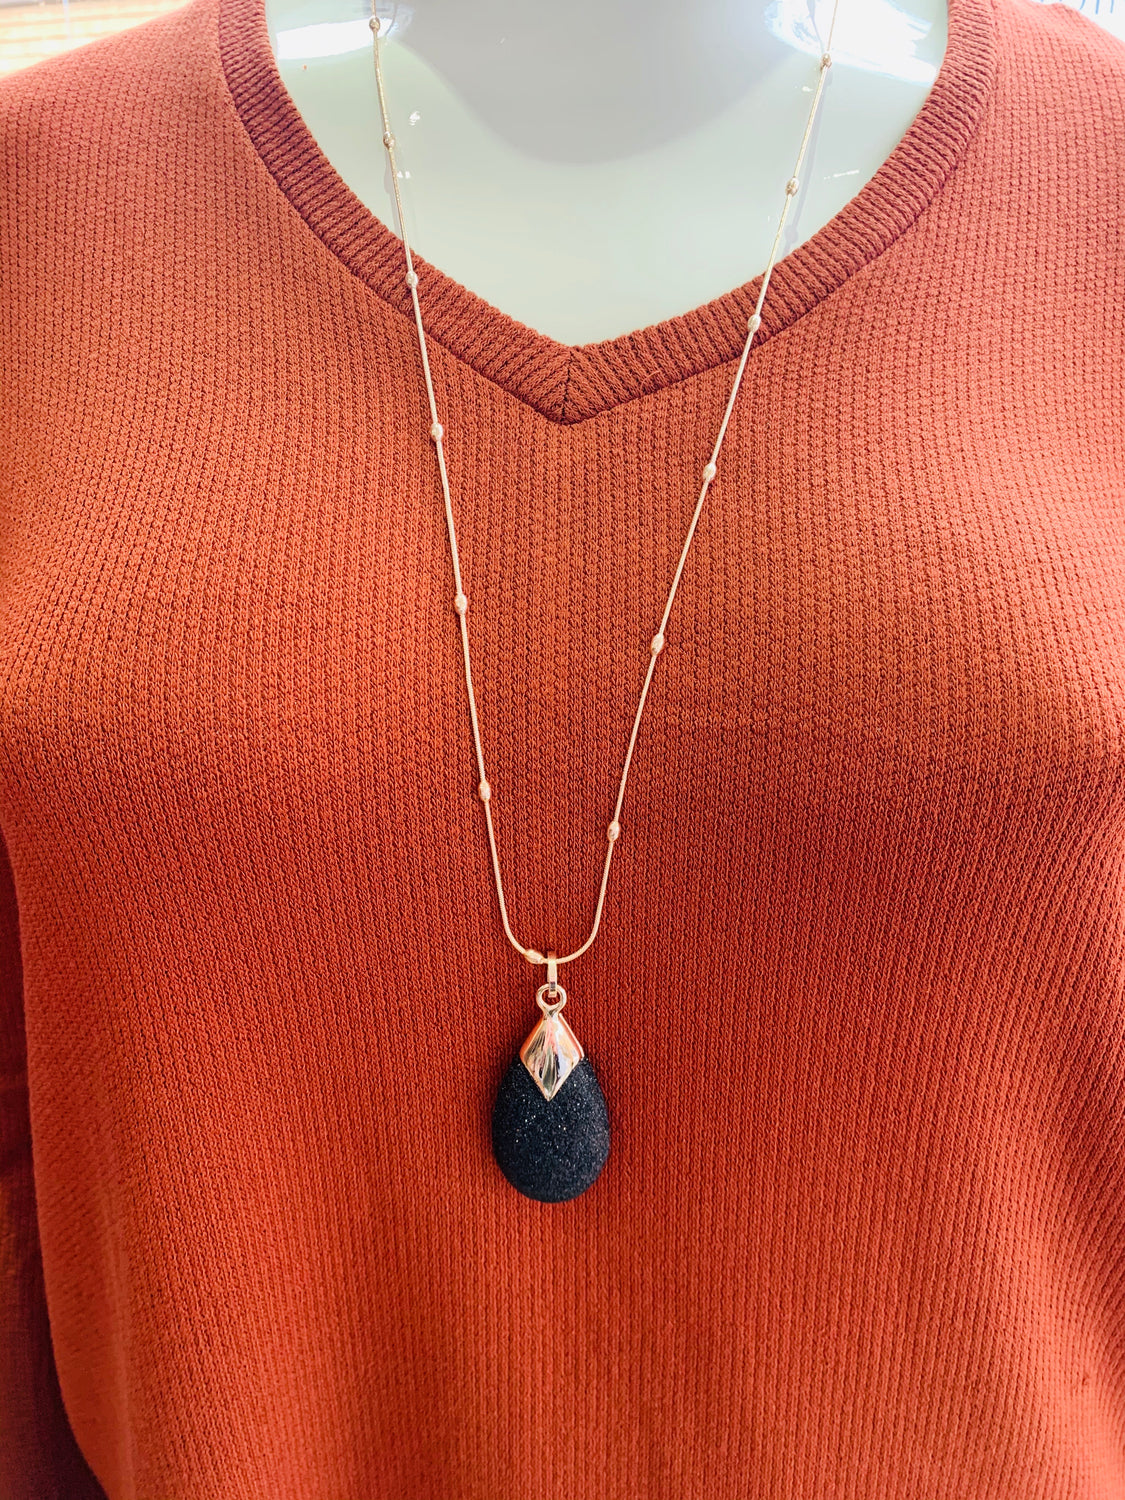 South Island Necklace in Rose Gold